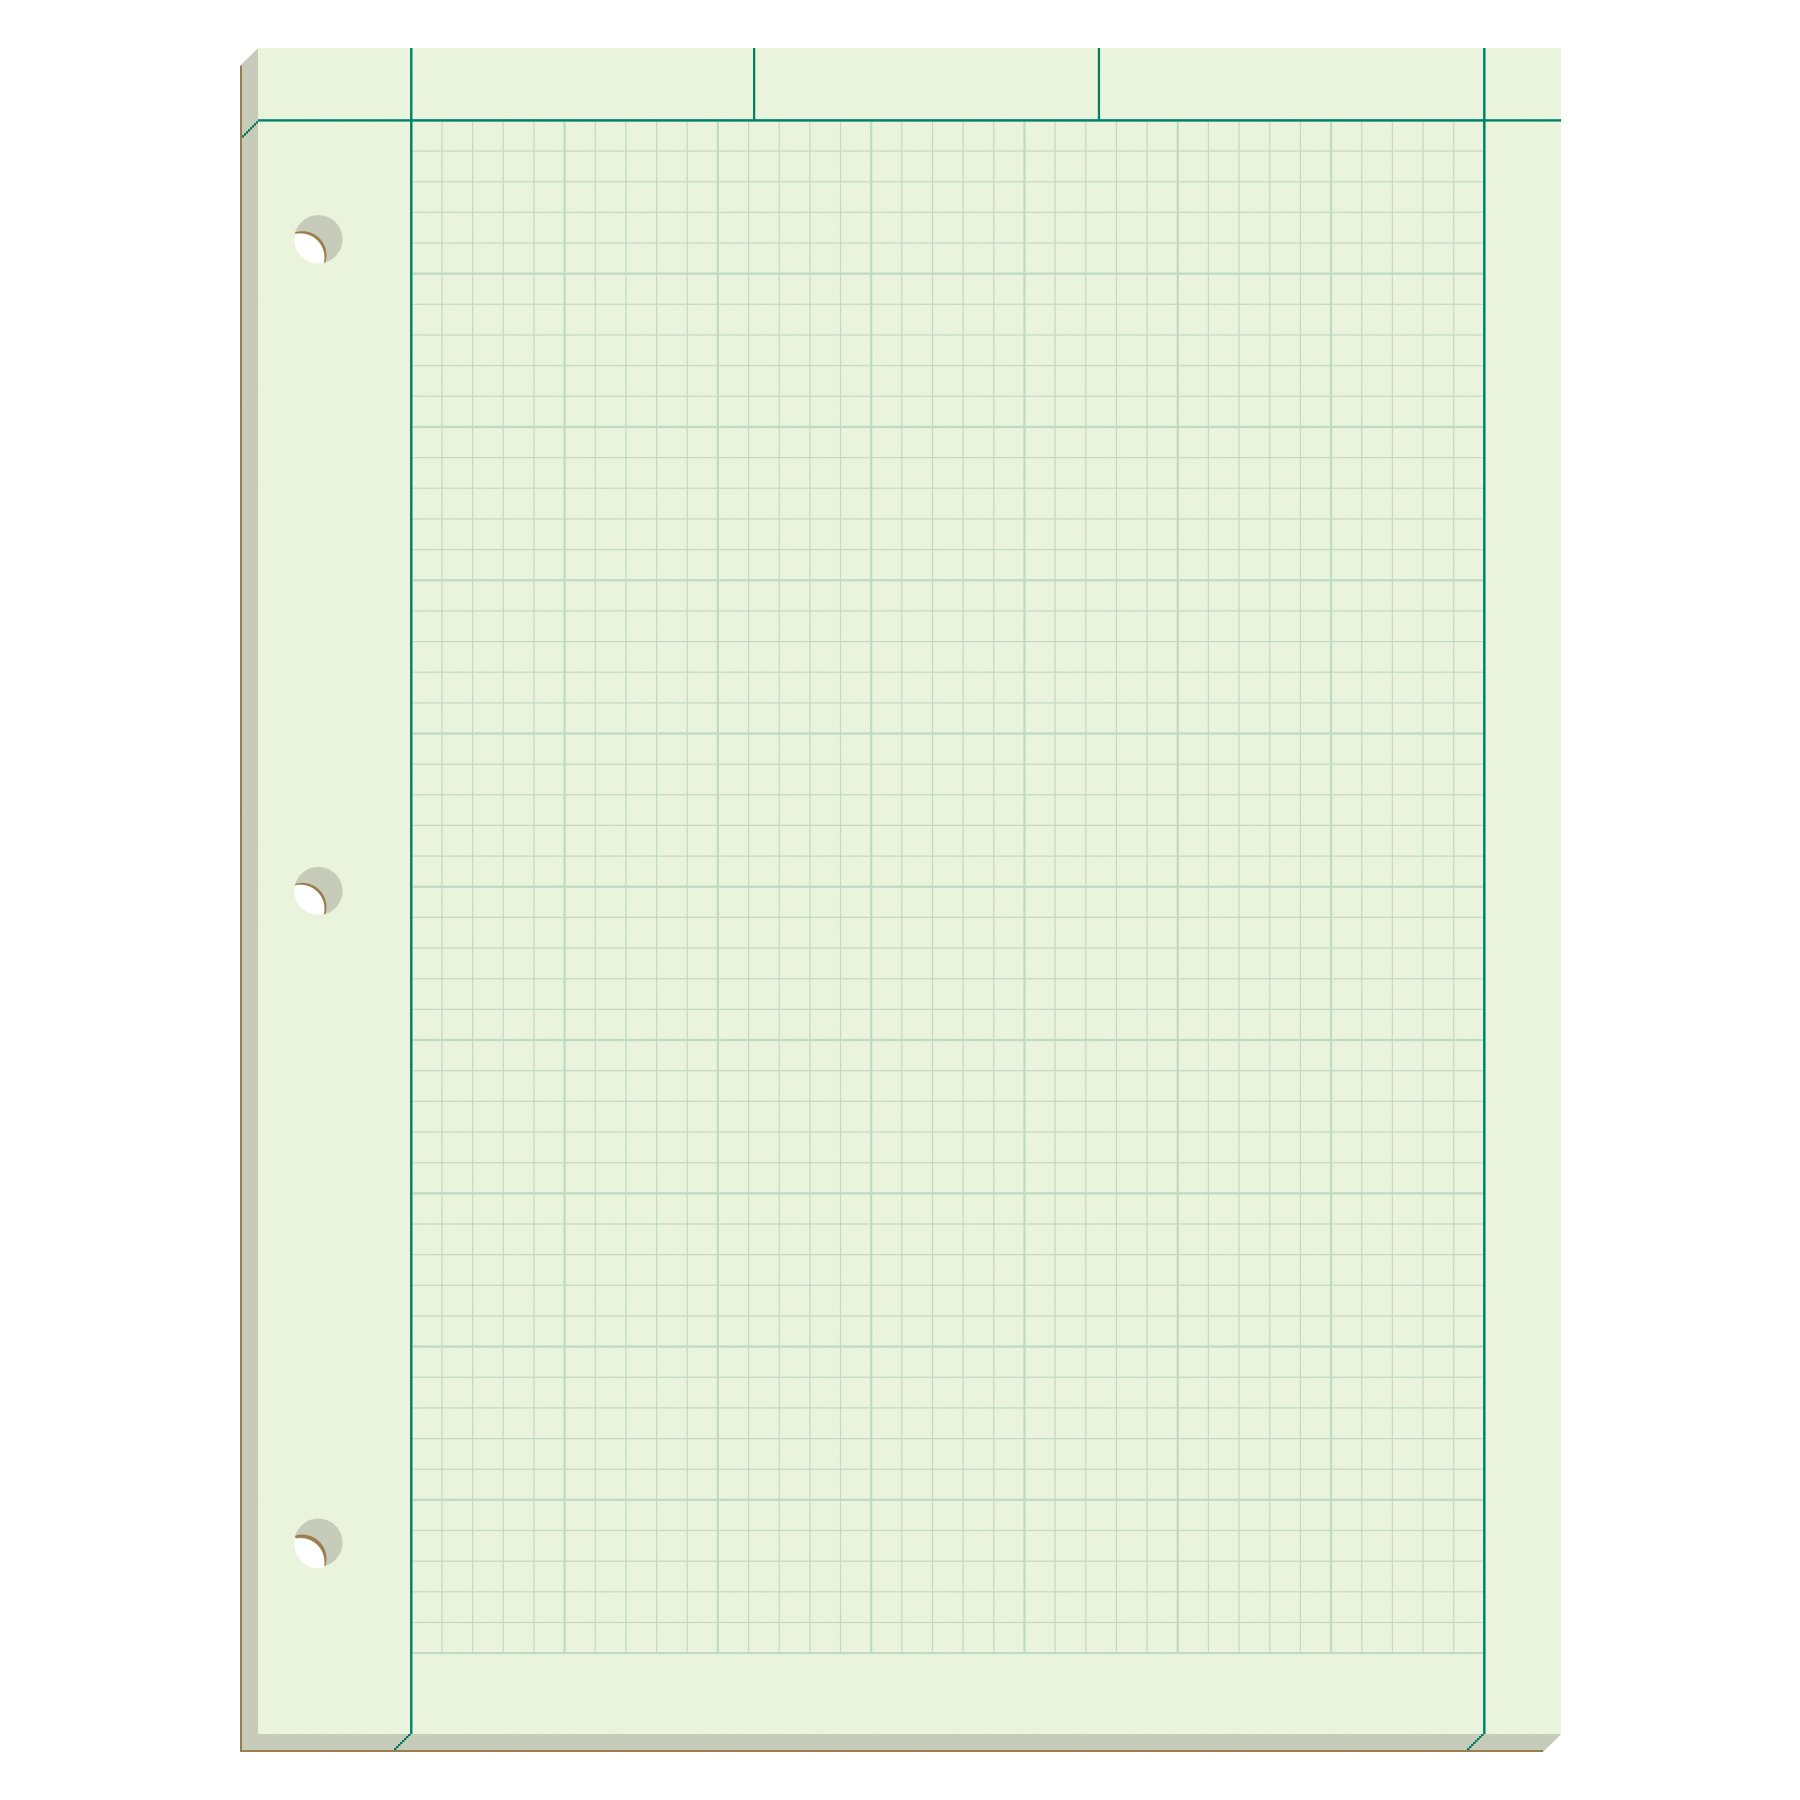 Ampad 42-142 Computation Pad, Greentint Paper, 8.5 x 11, 5 x 5 Rule, 3-Hole Punched, 100-Sheets, 1-Each